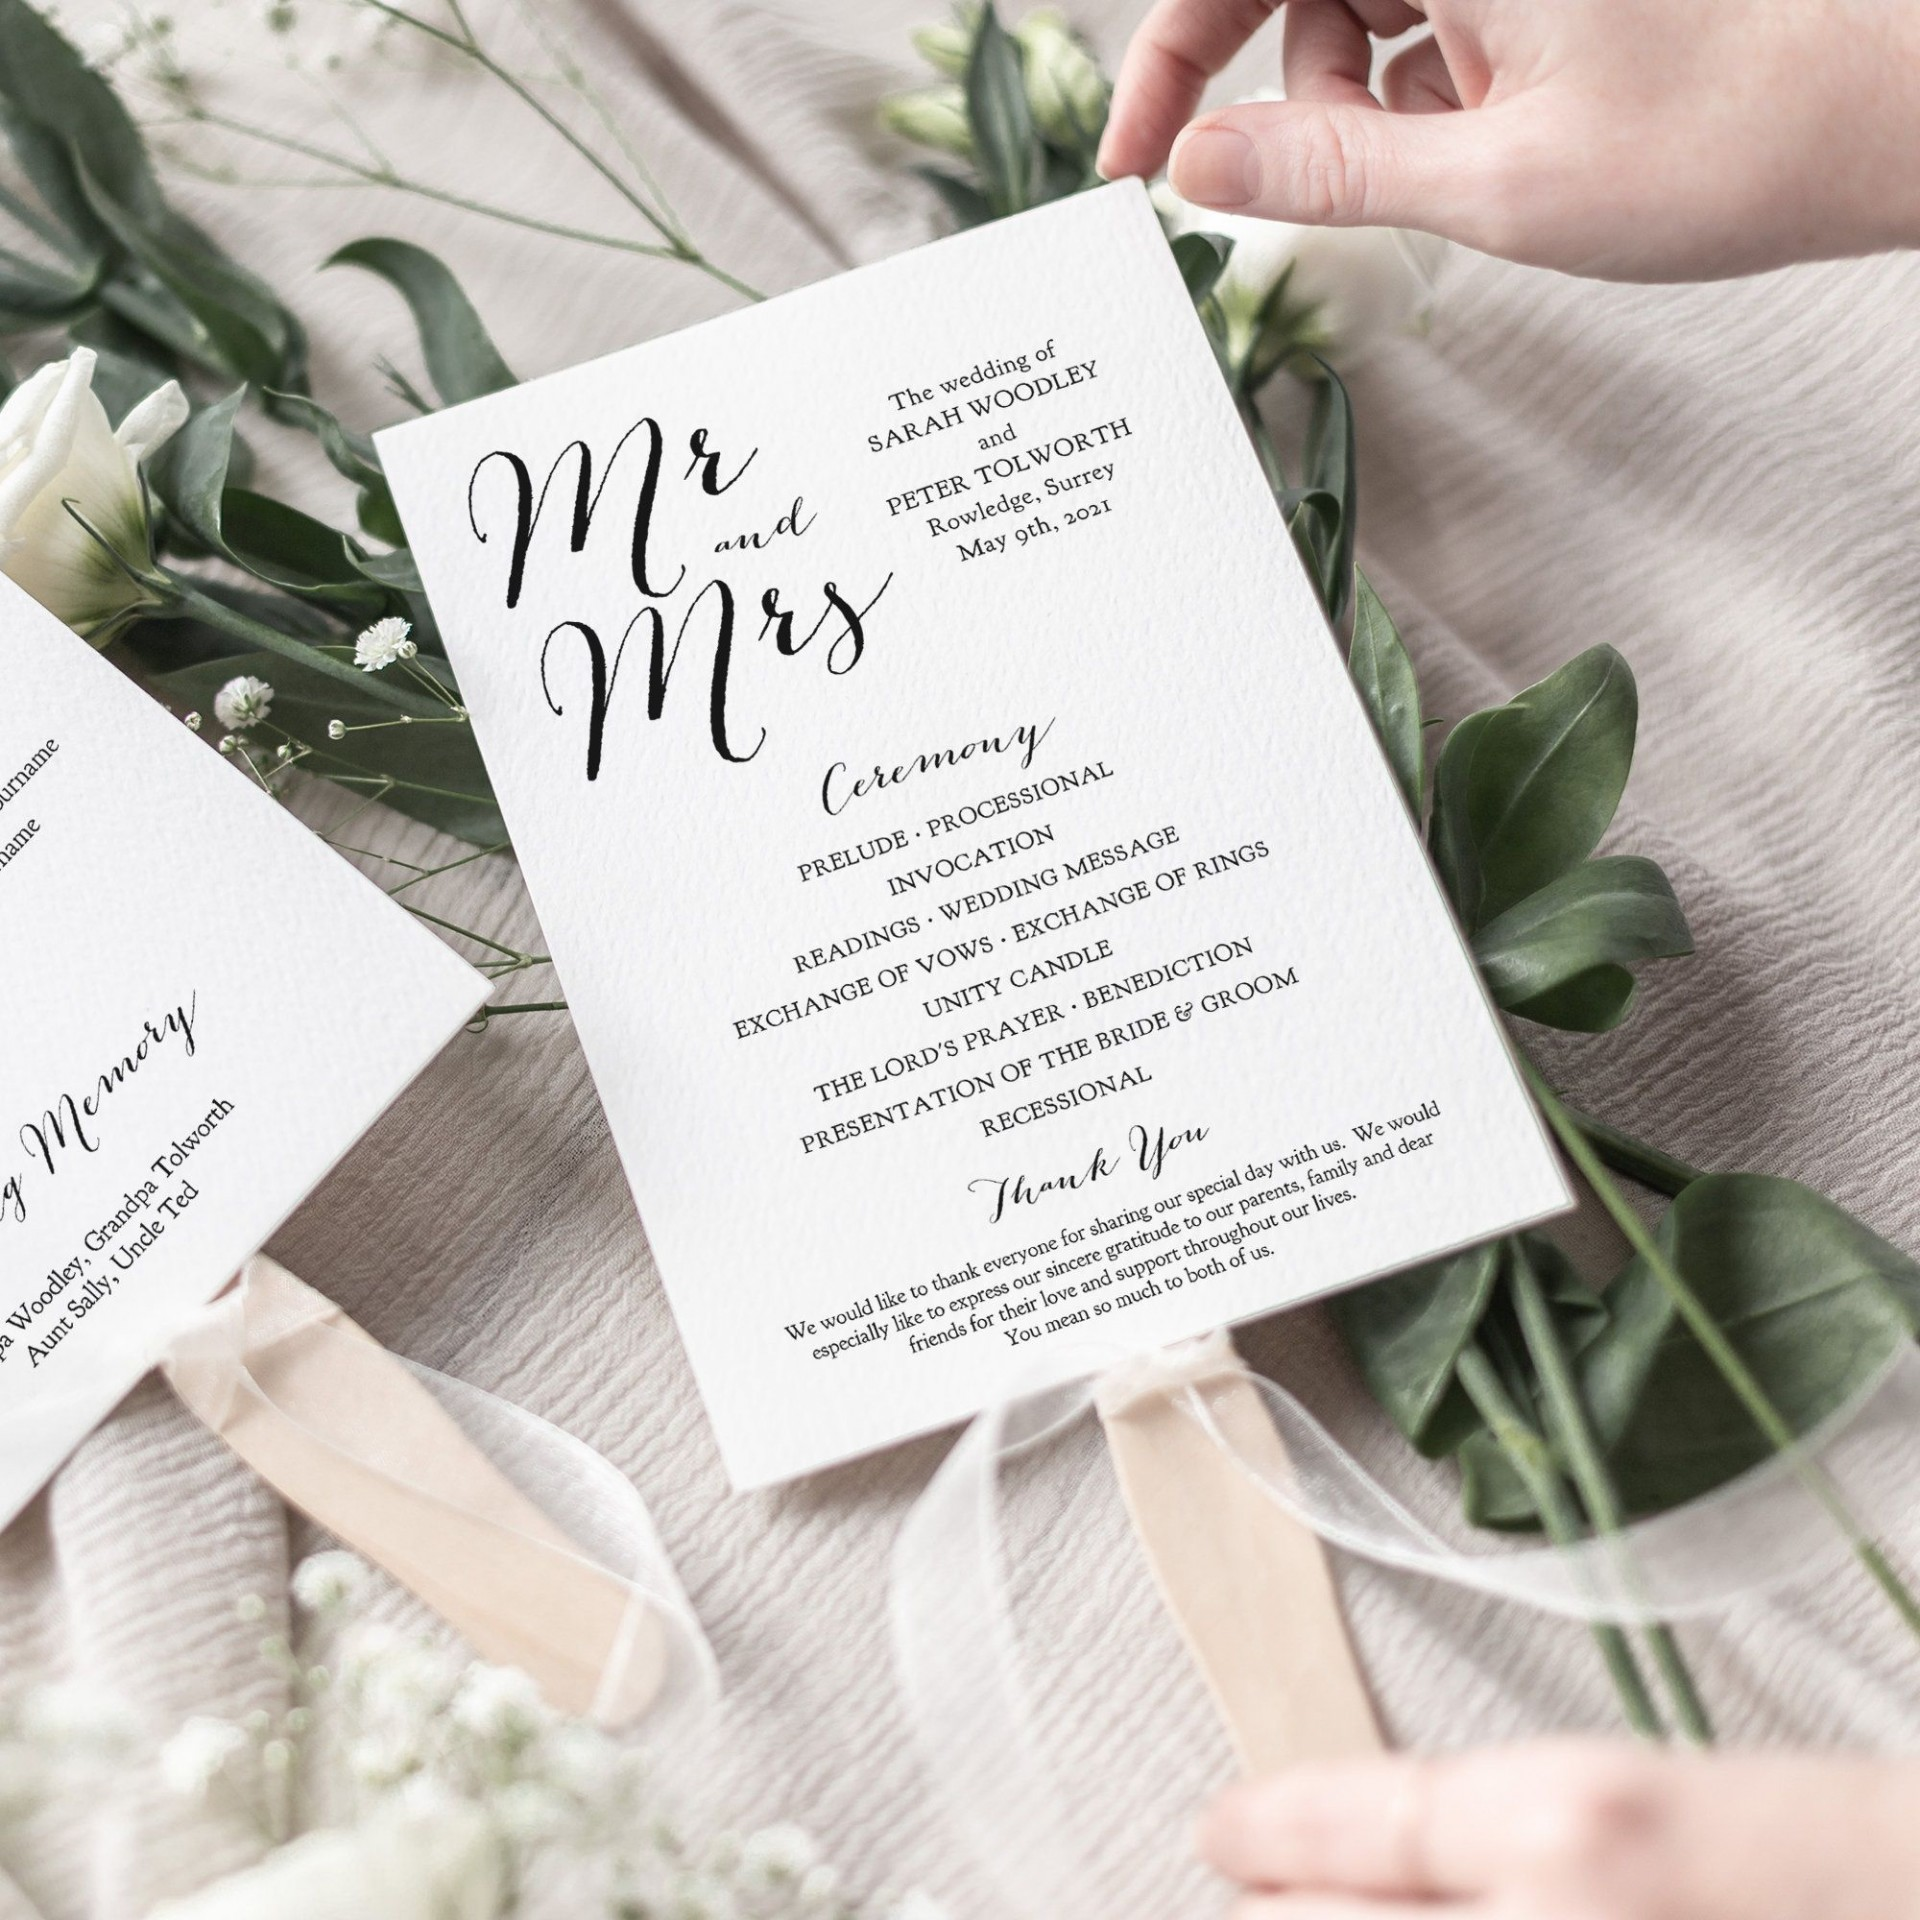 007 Astounding Wedding Order Of Service Template Free Inspiration  Front Cover Download Church1920